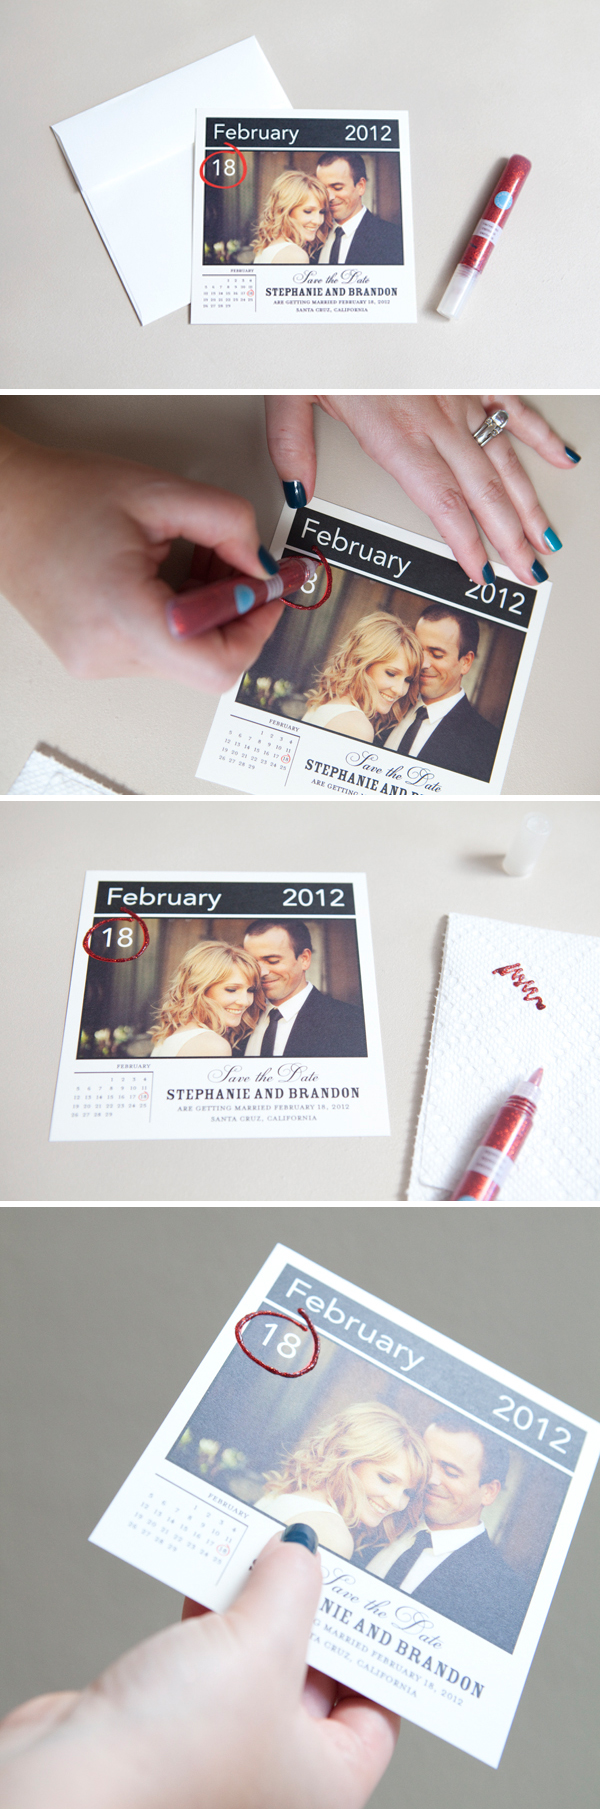 How to embellish store bought save the dates!